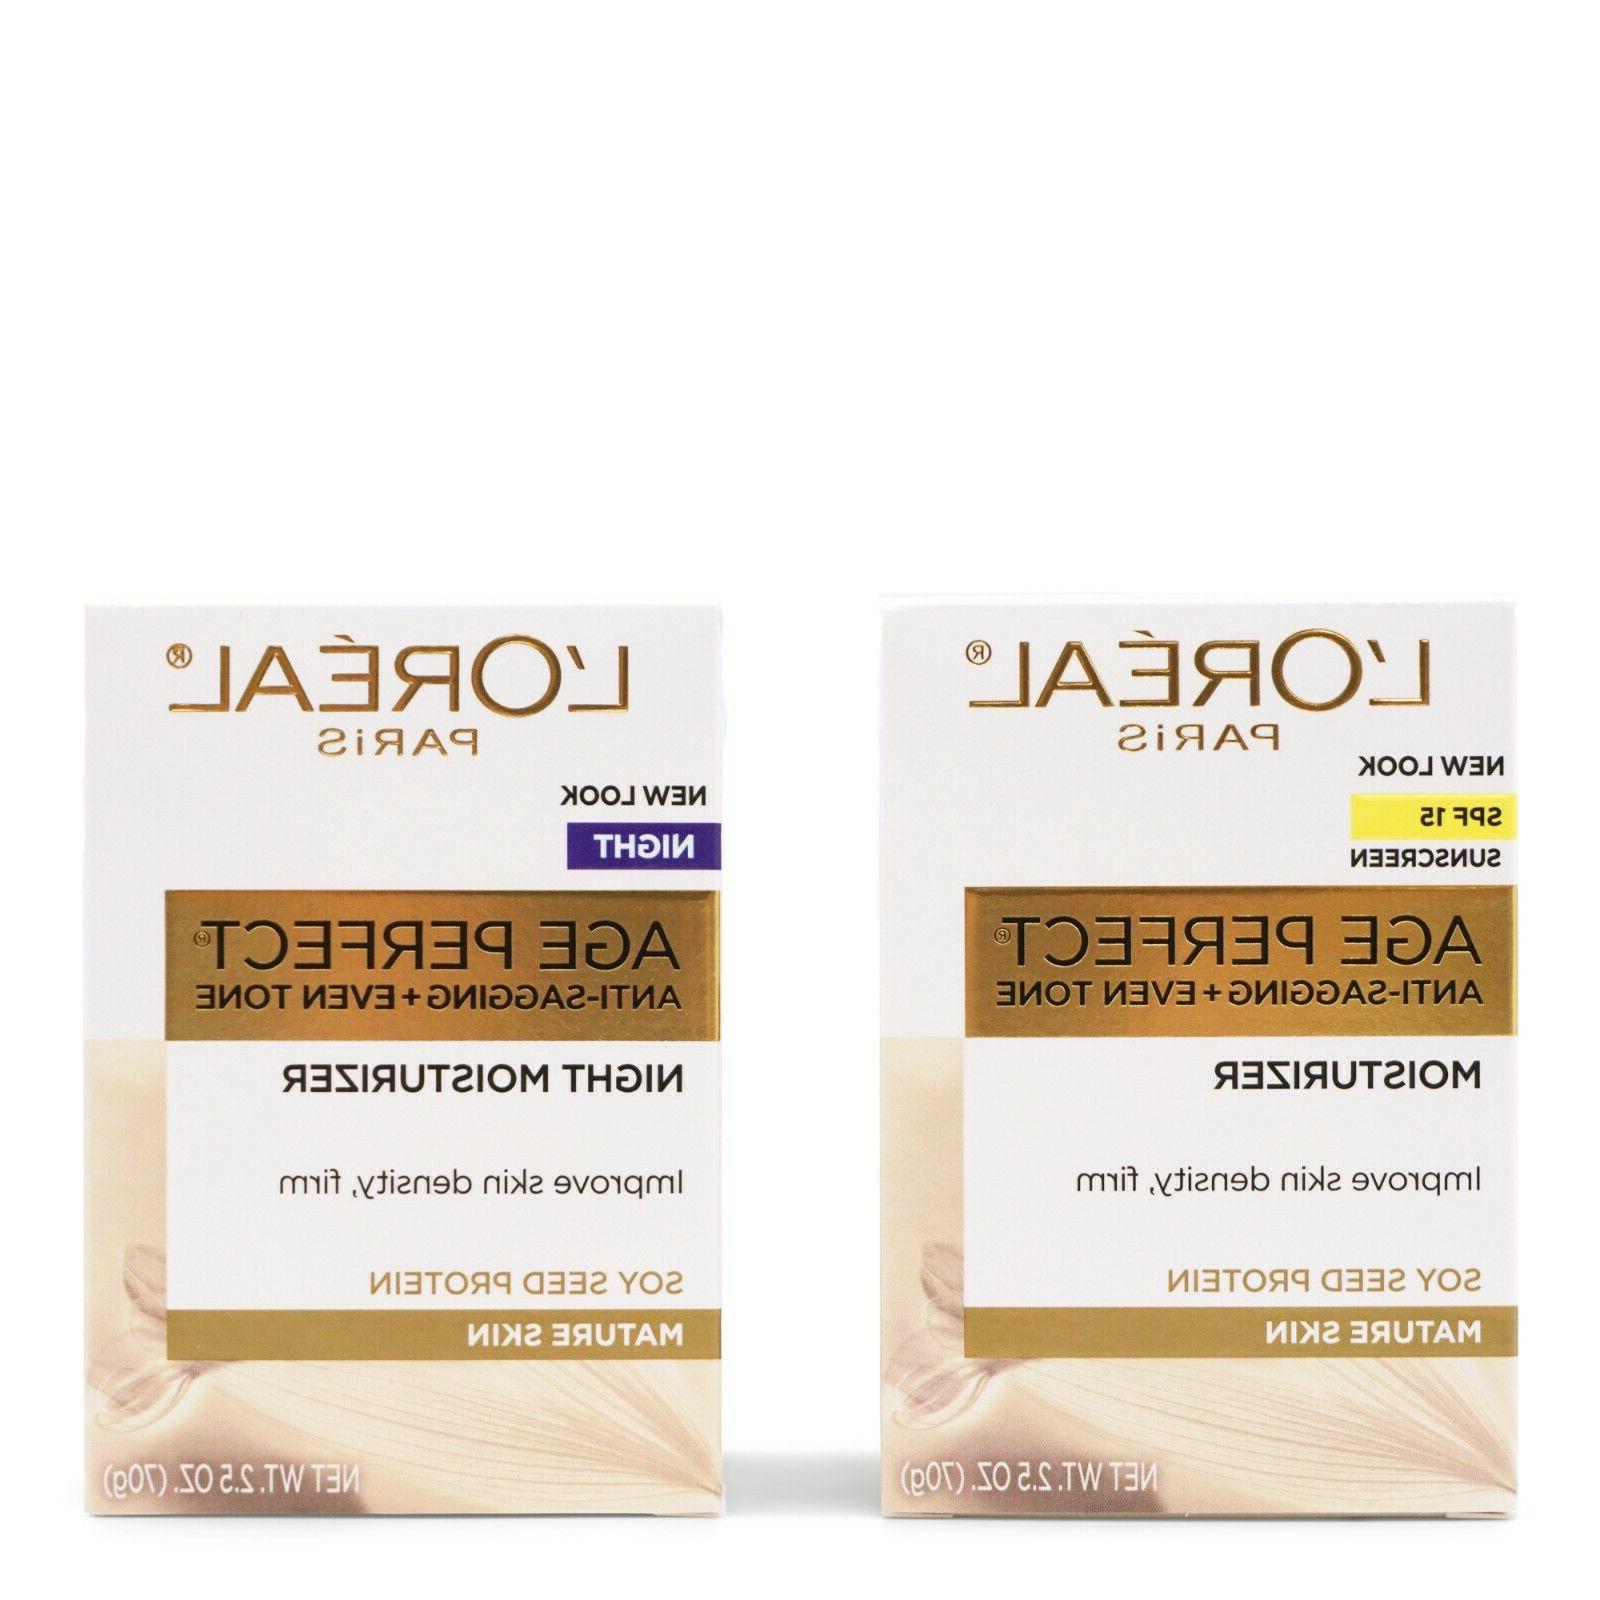 L'Oreal Perfect Mature + 2020 Packaging